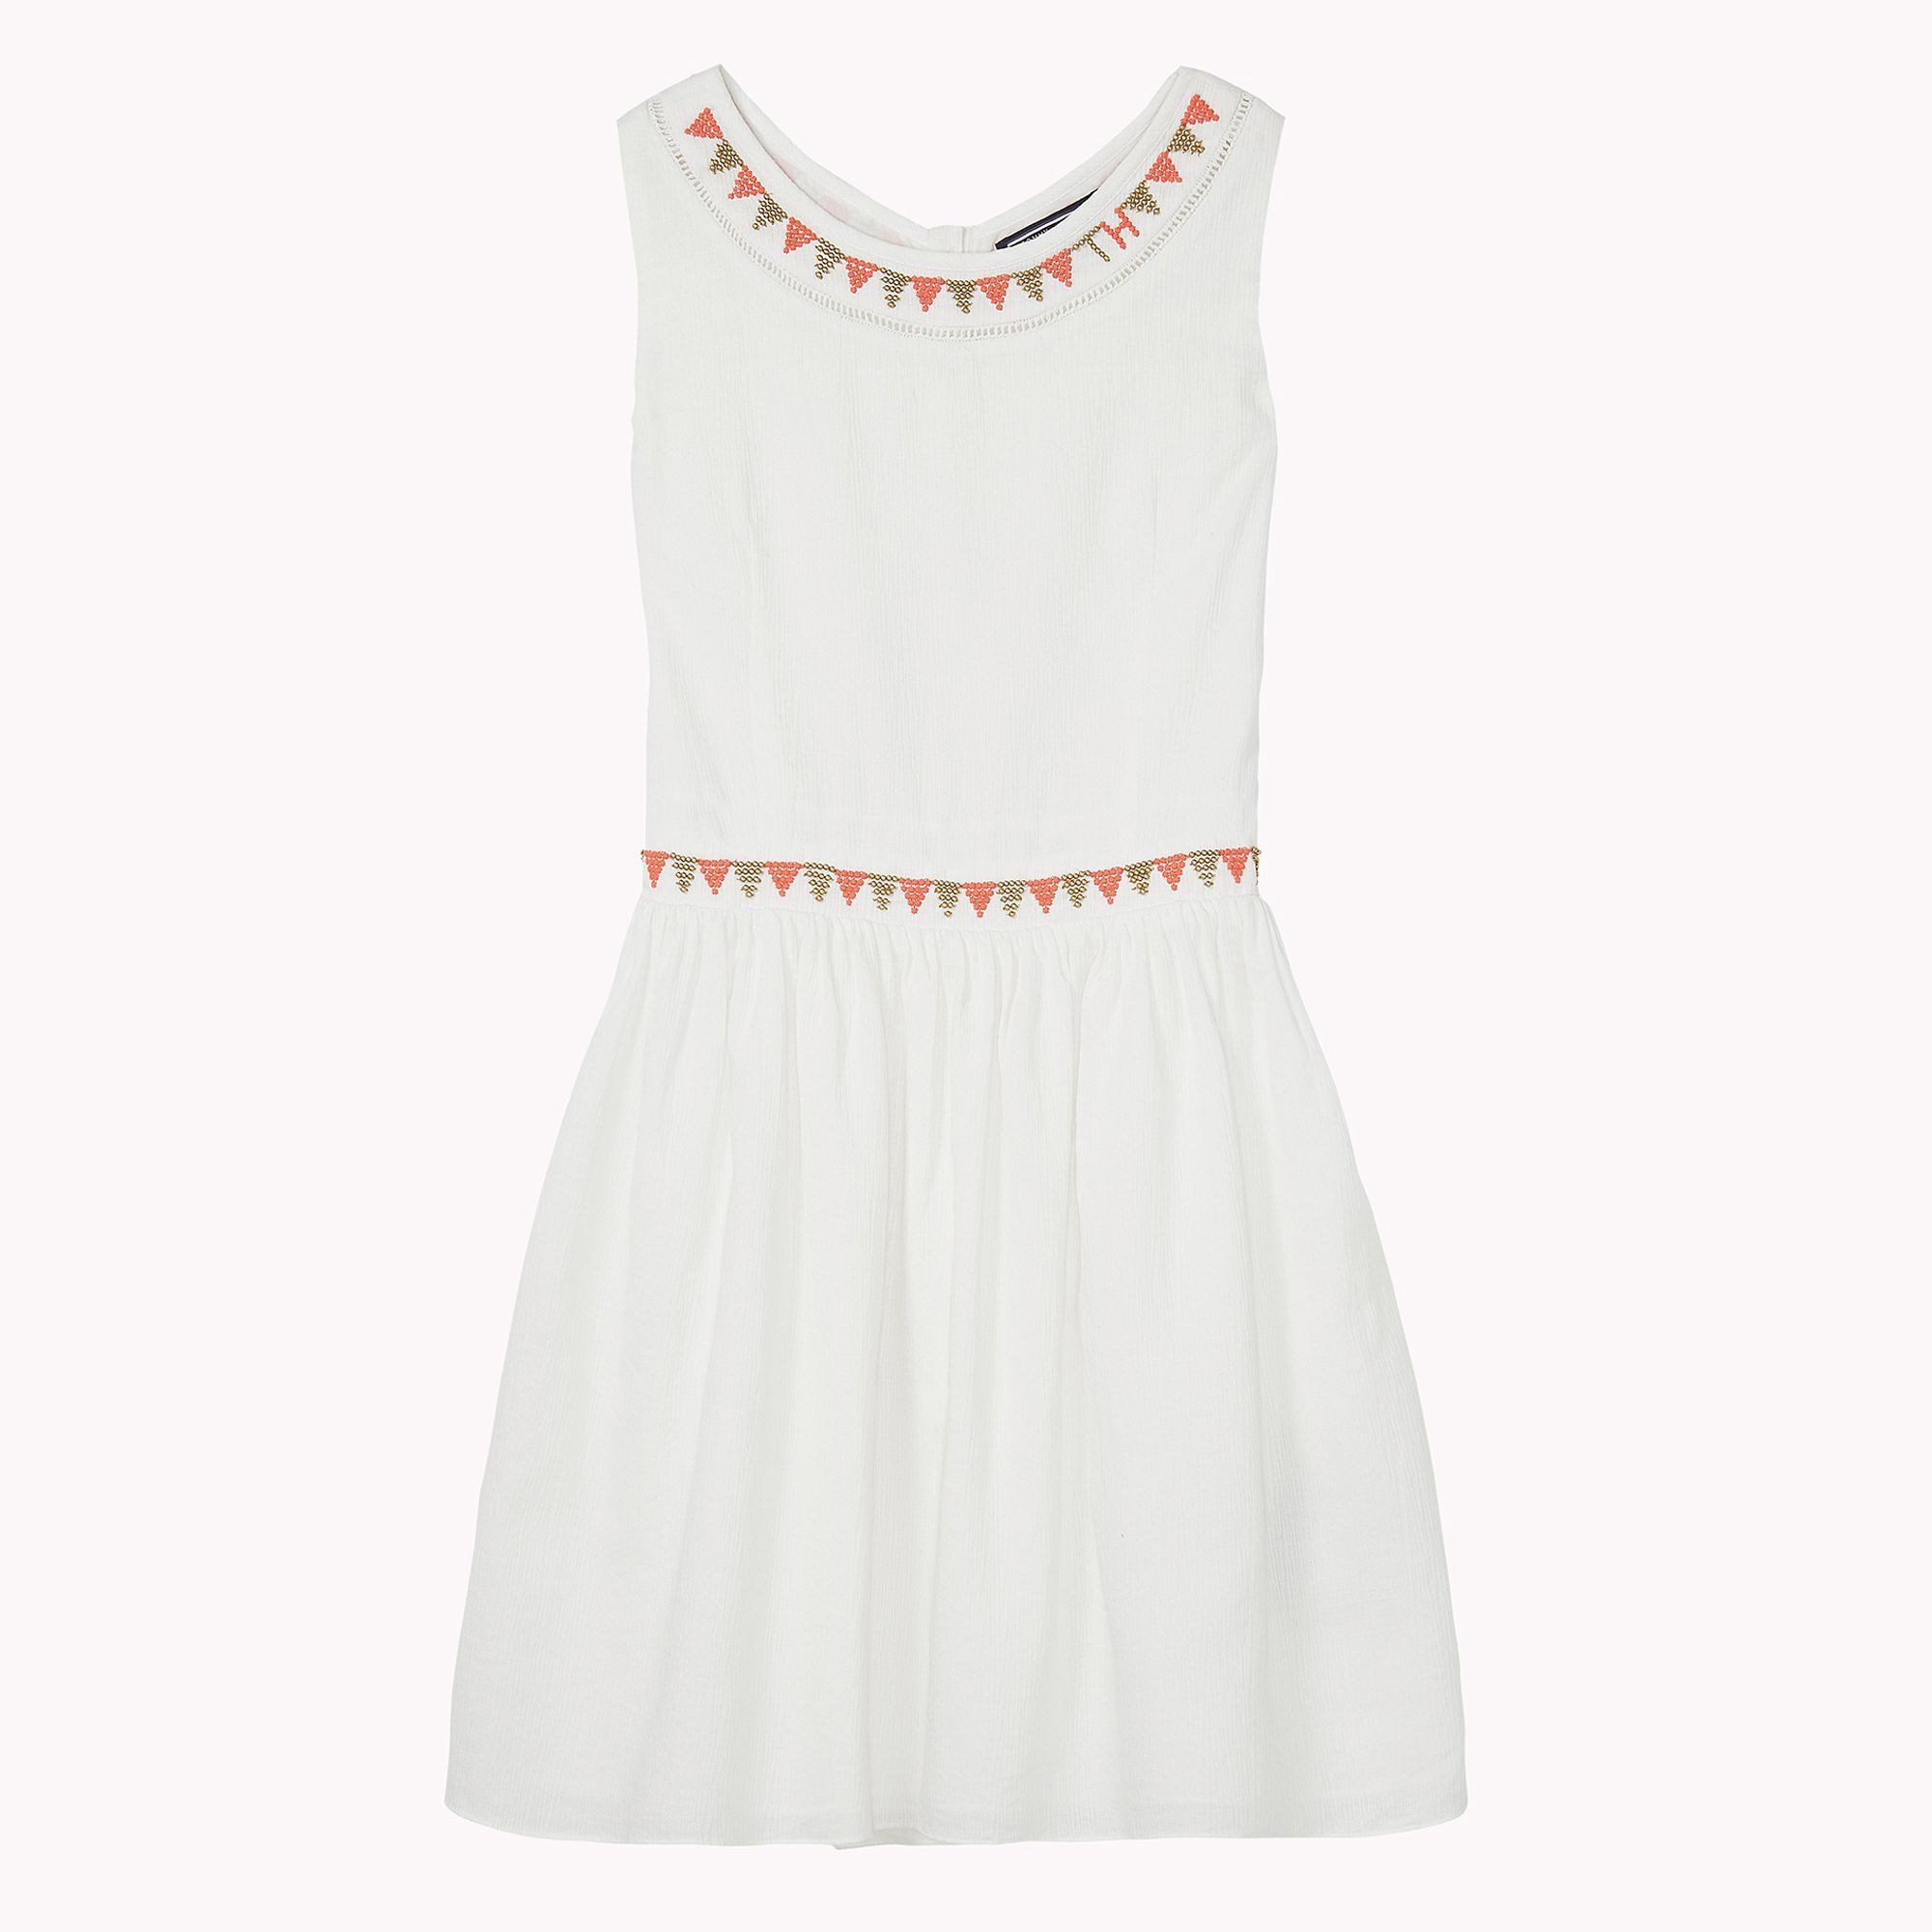 dded229b Tommy Hilfiger Th Kids Beaded Sun Dress - 6 | Products | Tommy ...